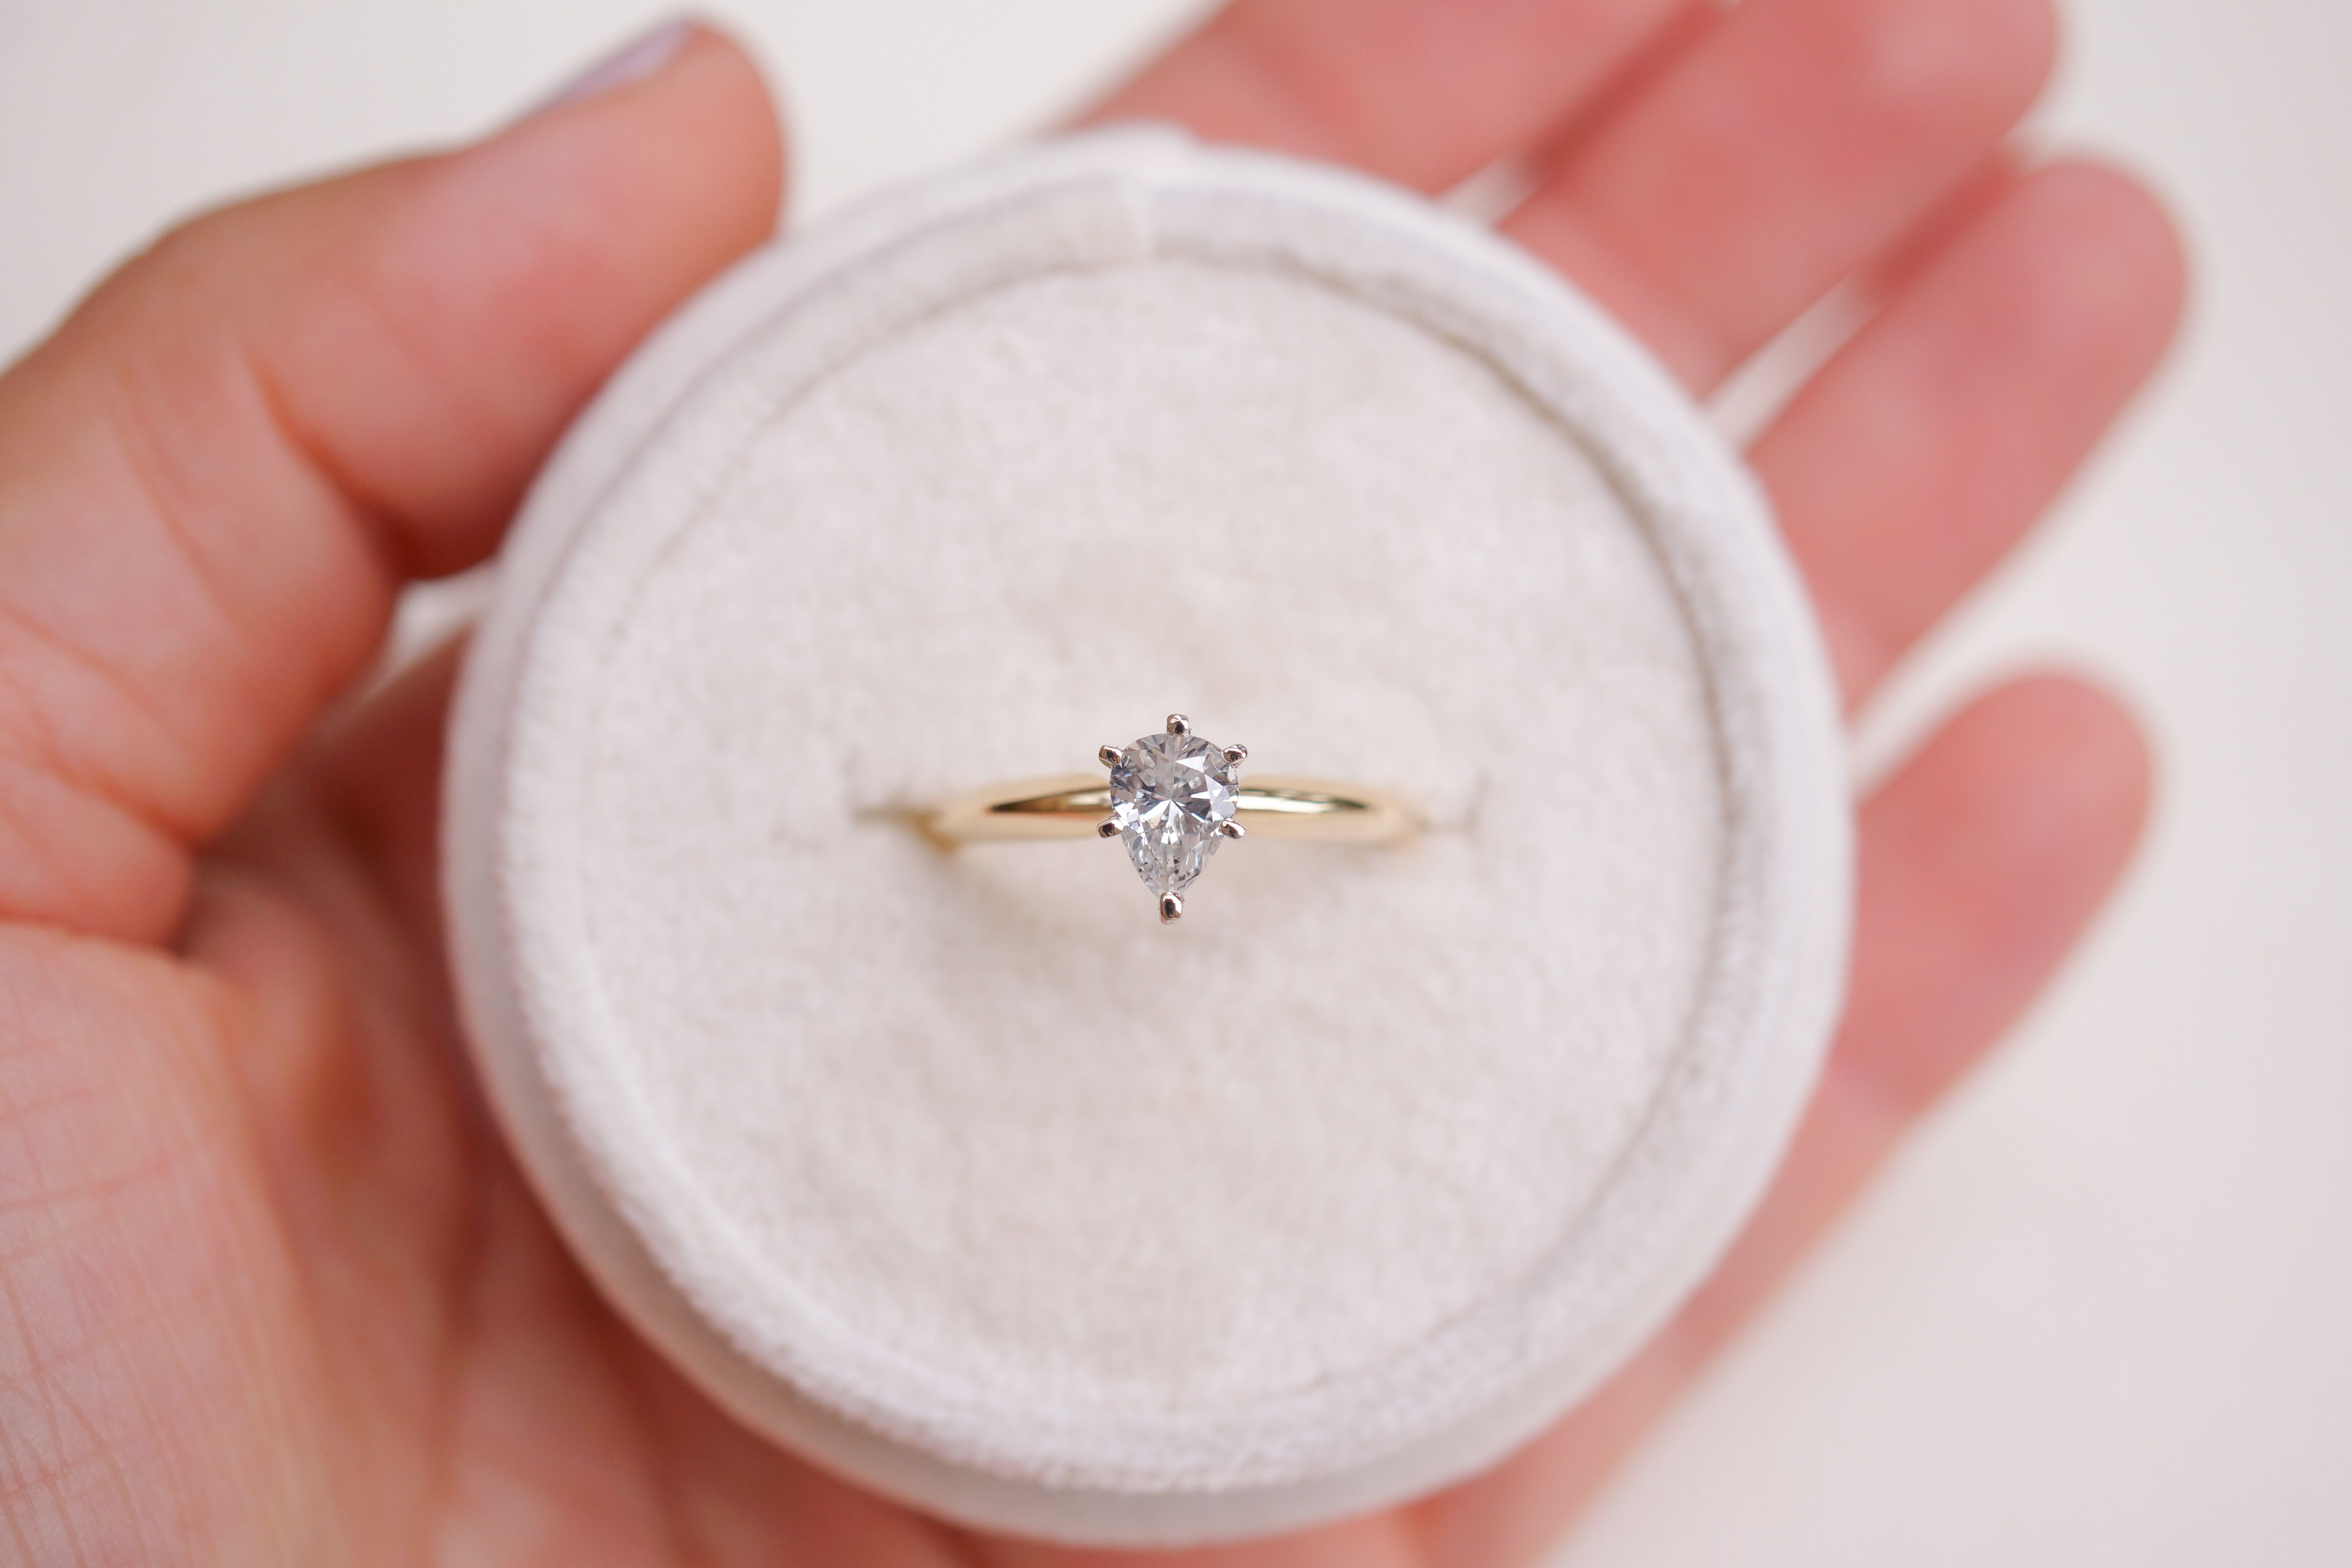 Pear shape diamond solitaire engagement ring in k yellow and white